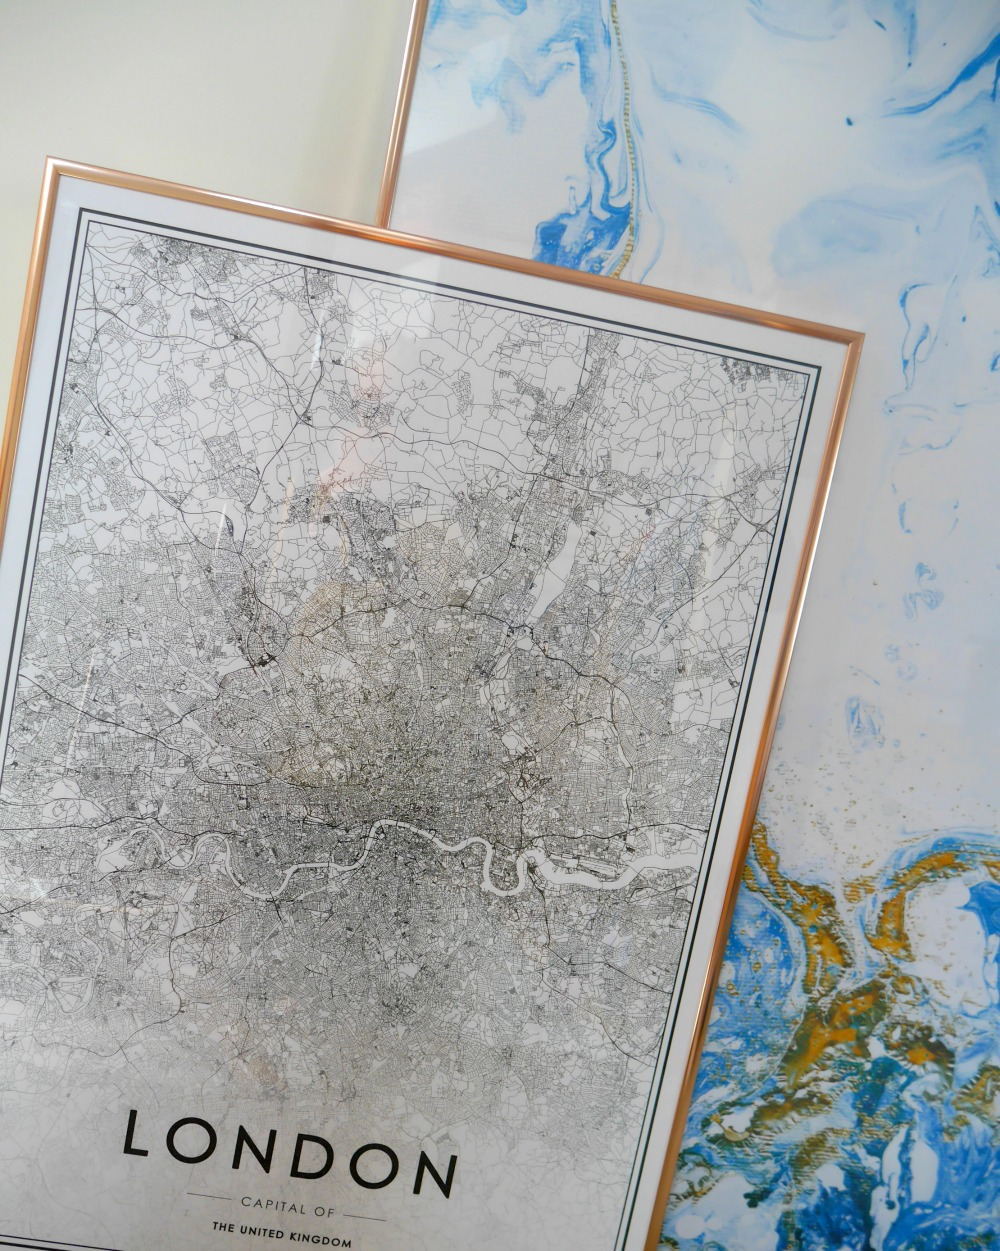 London map and prints from Desenio